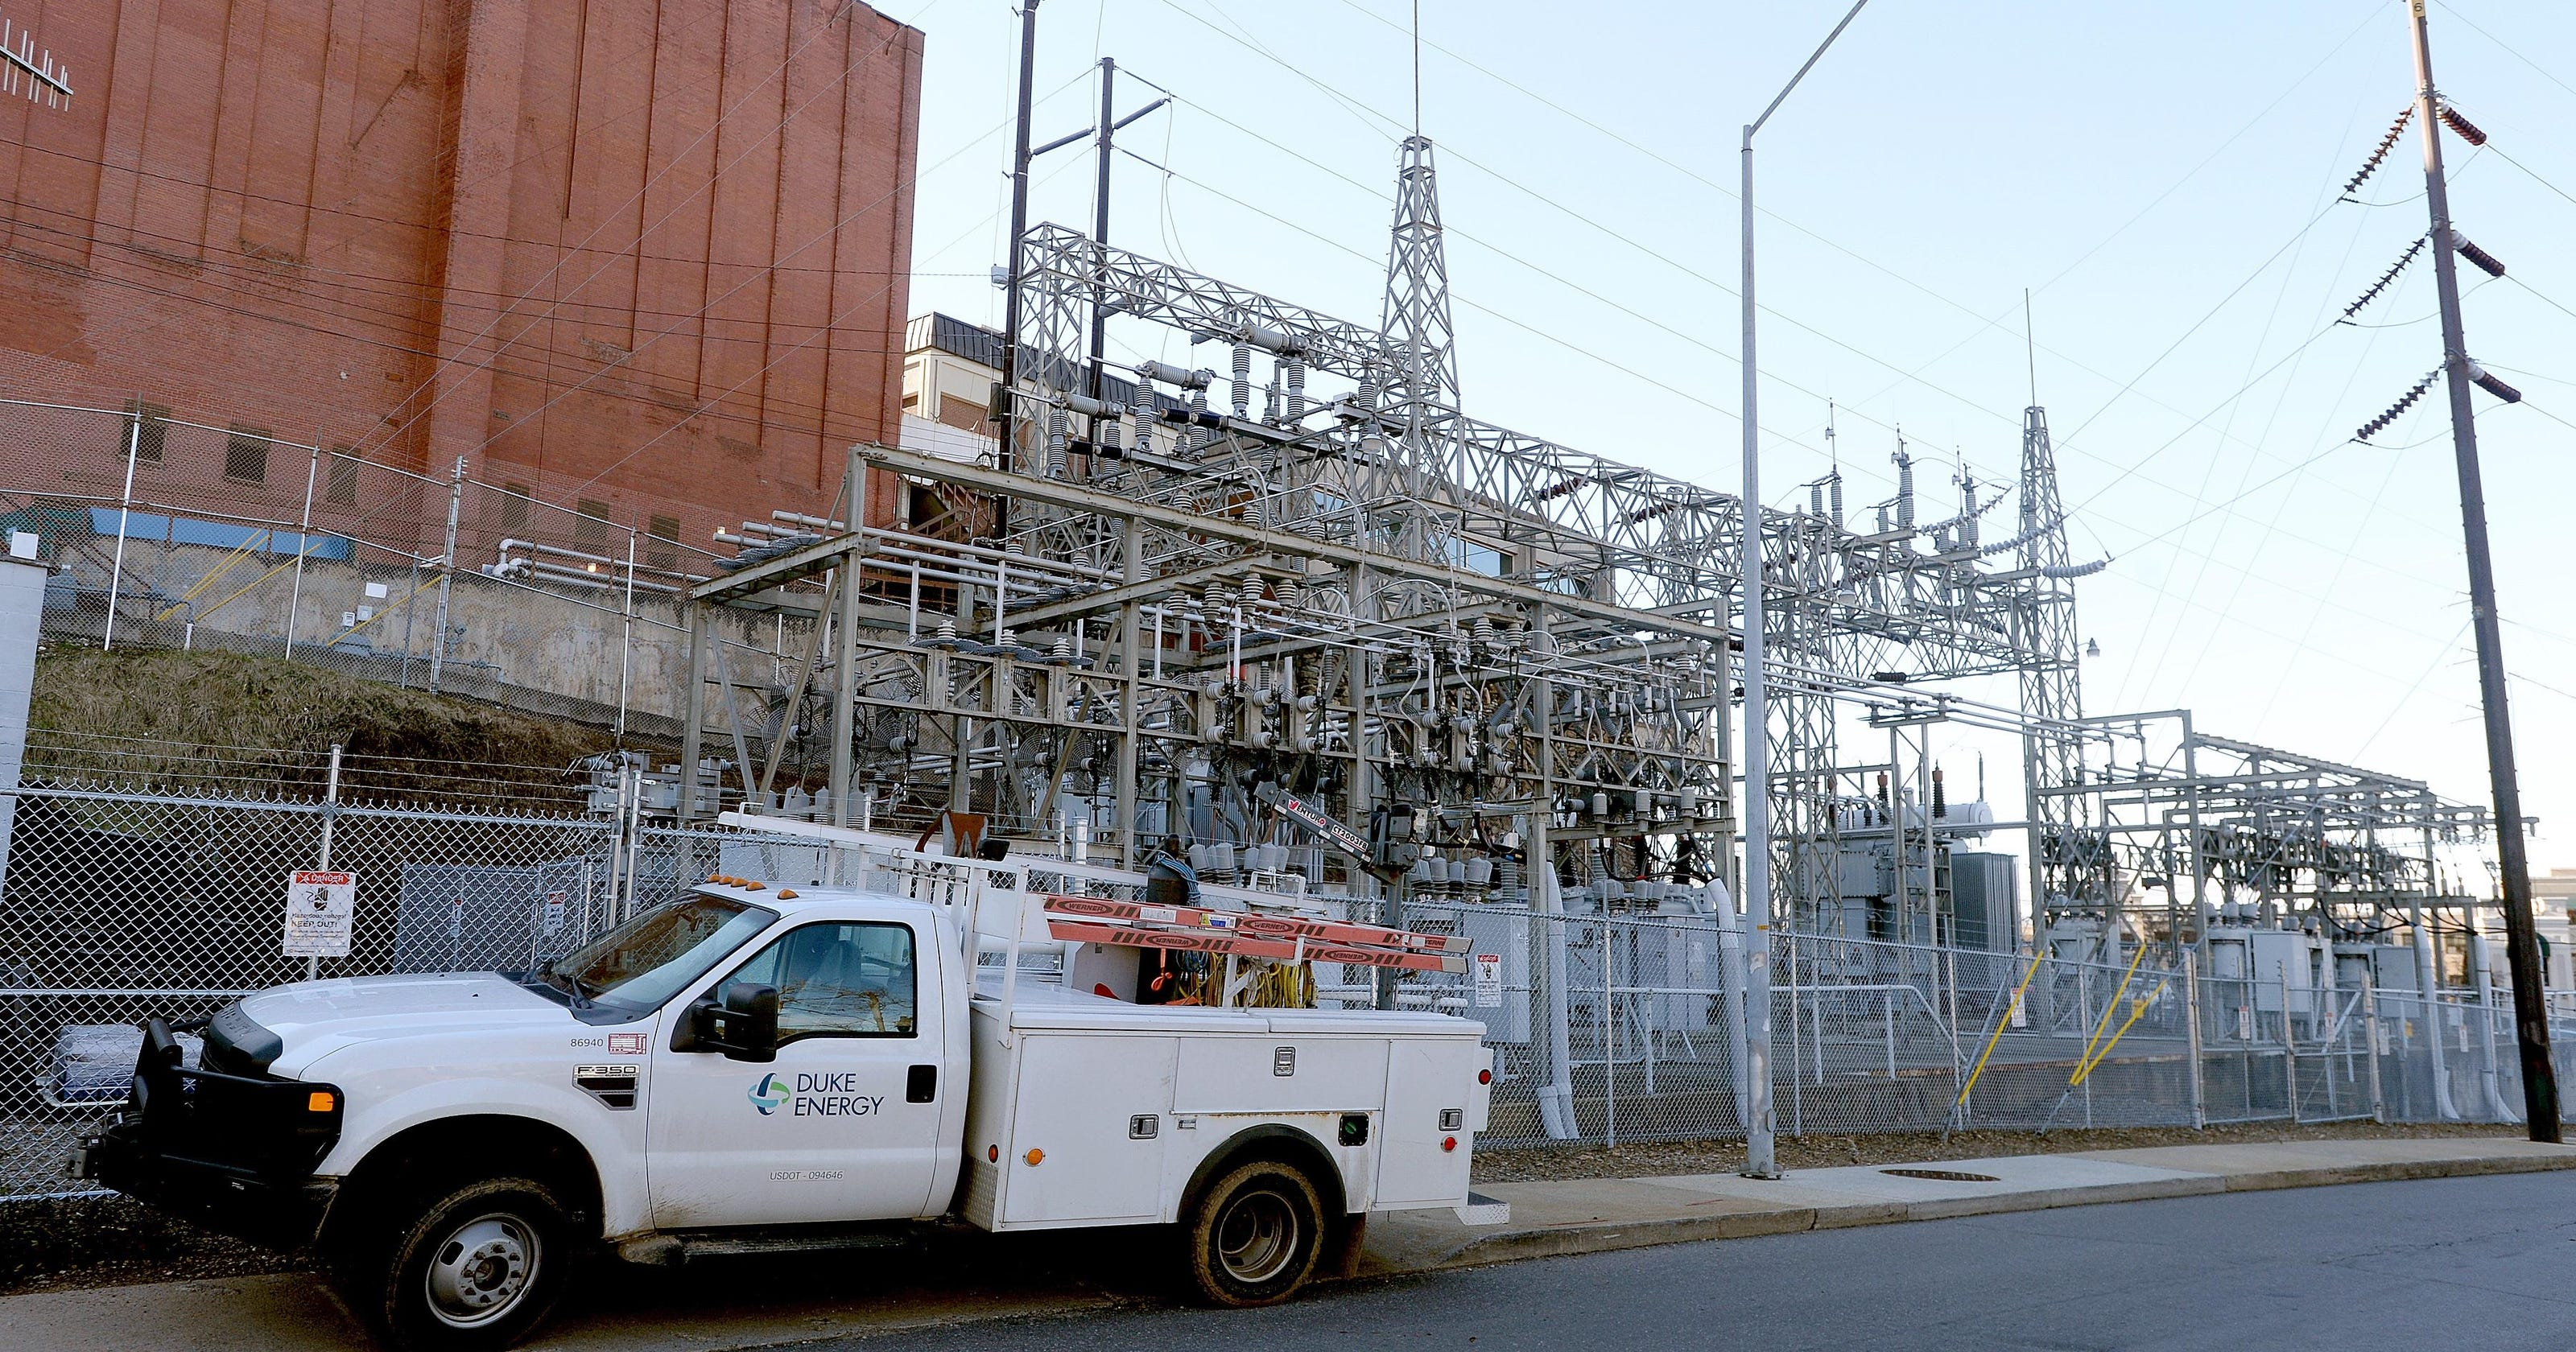 Our view: Substation issues can be solved with cooperation